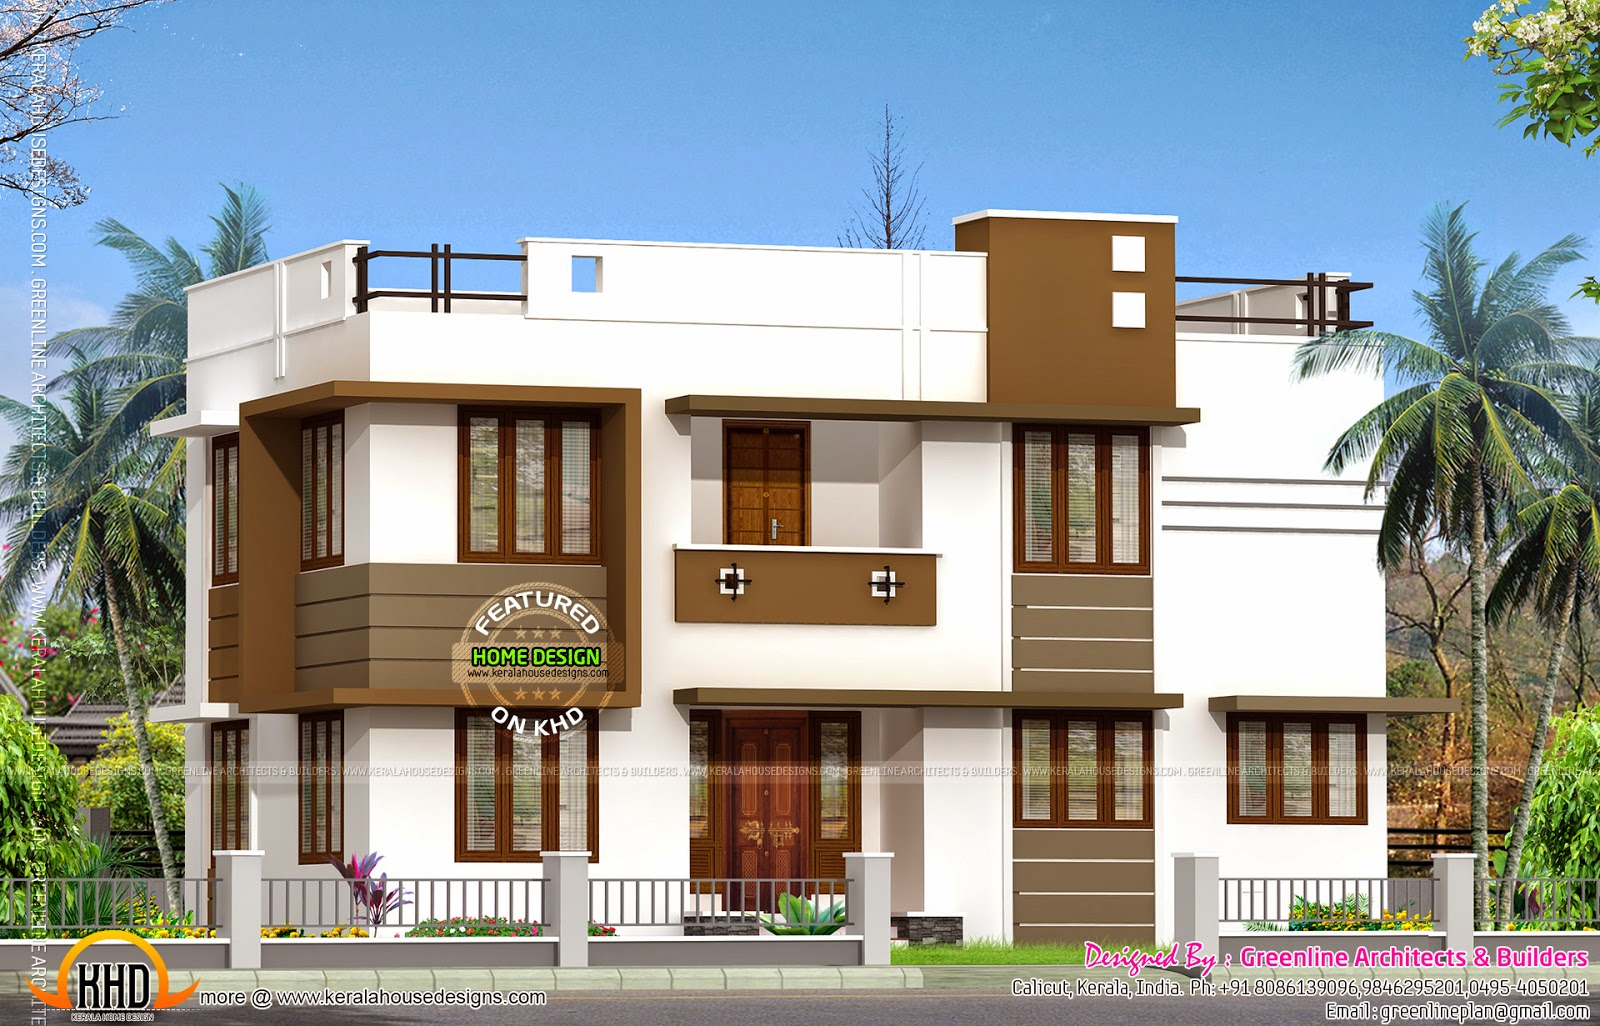 Low budget double storied house kerala home design and for Homes on budget com